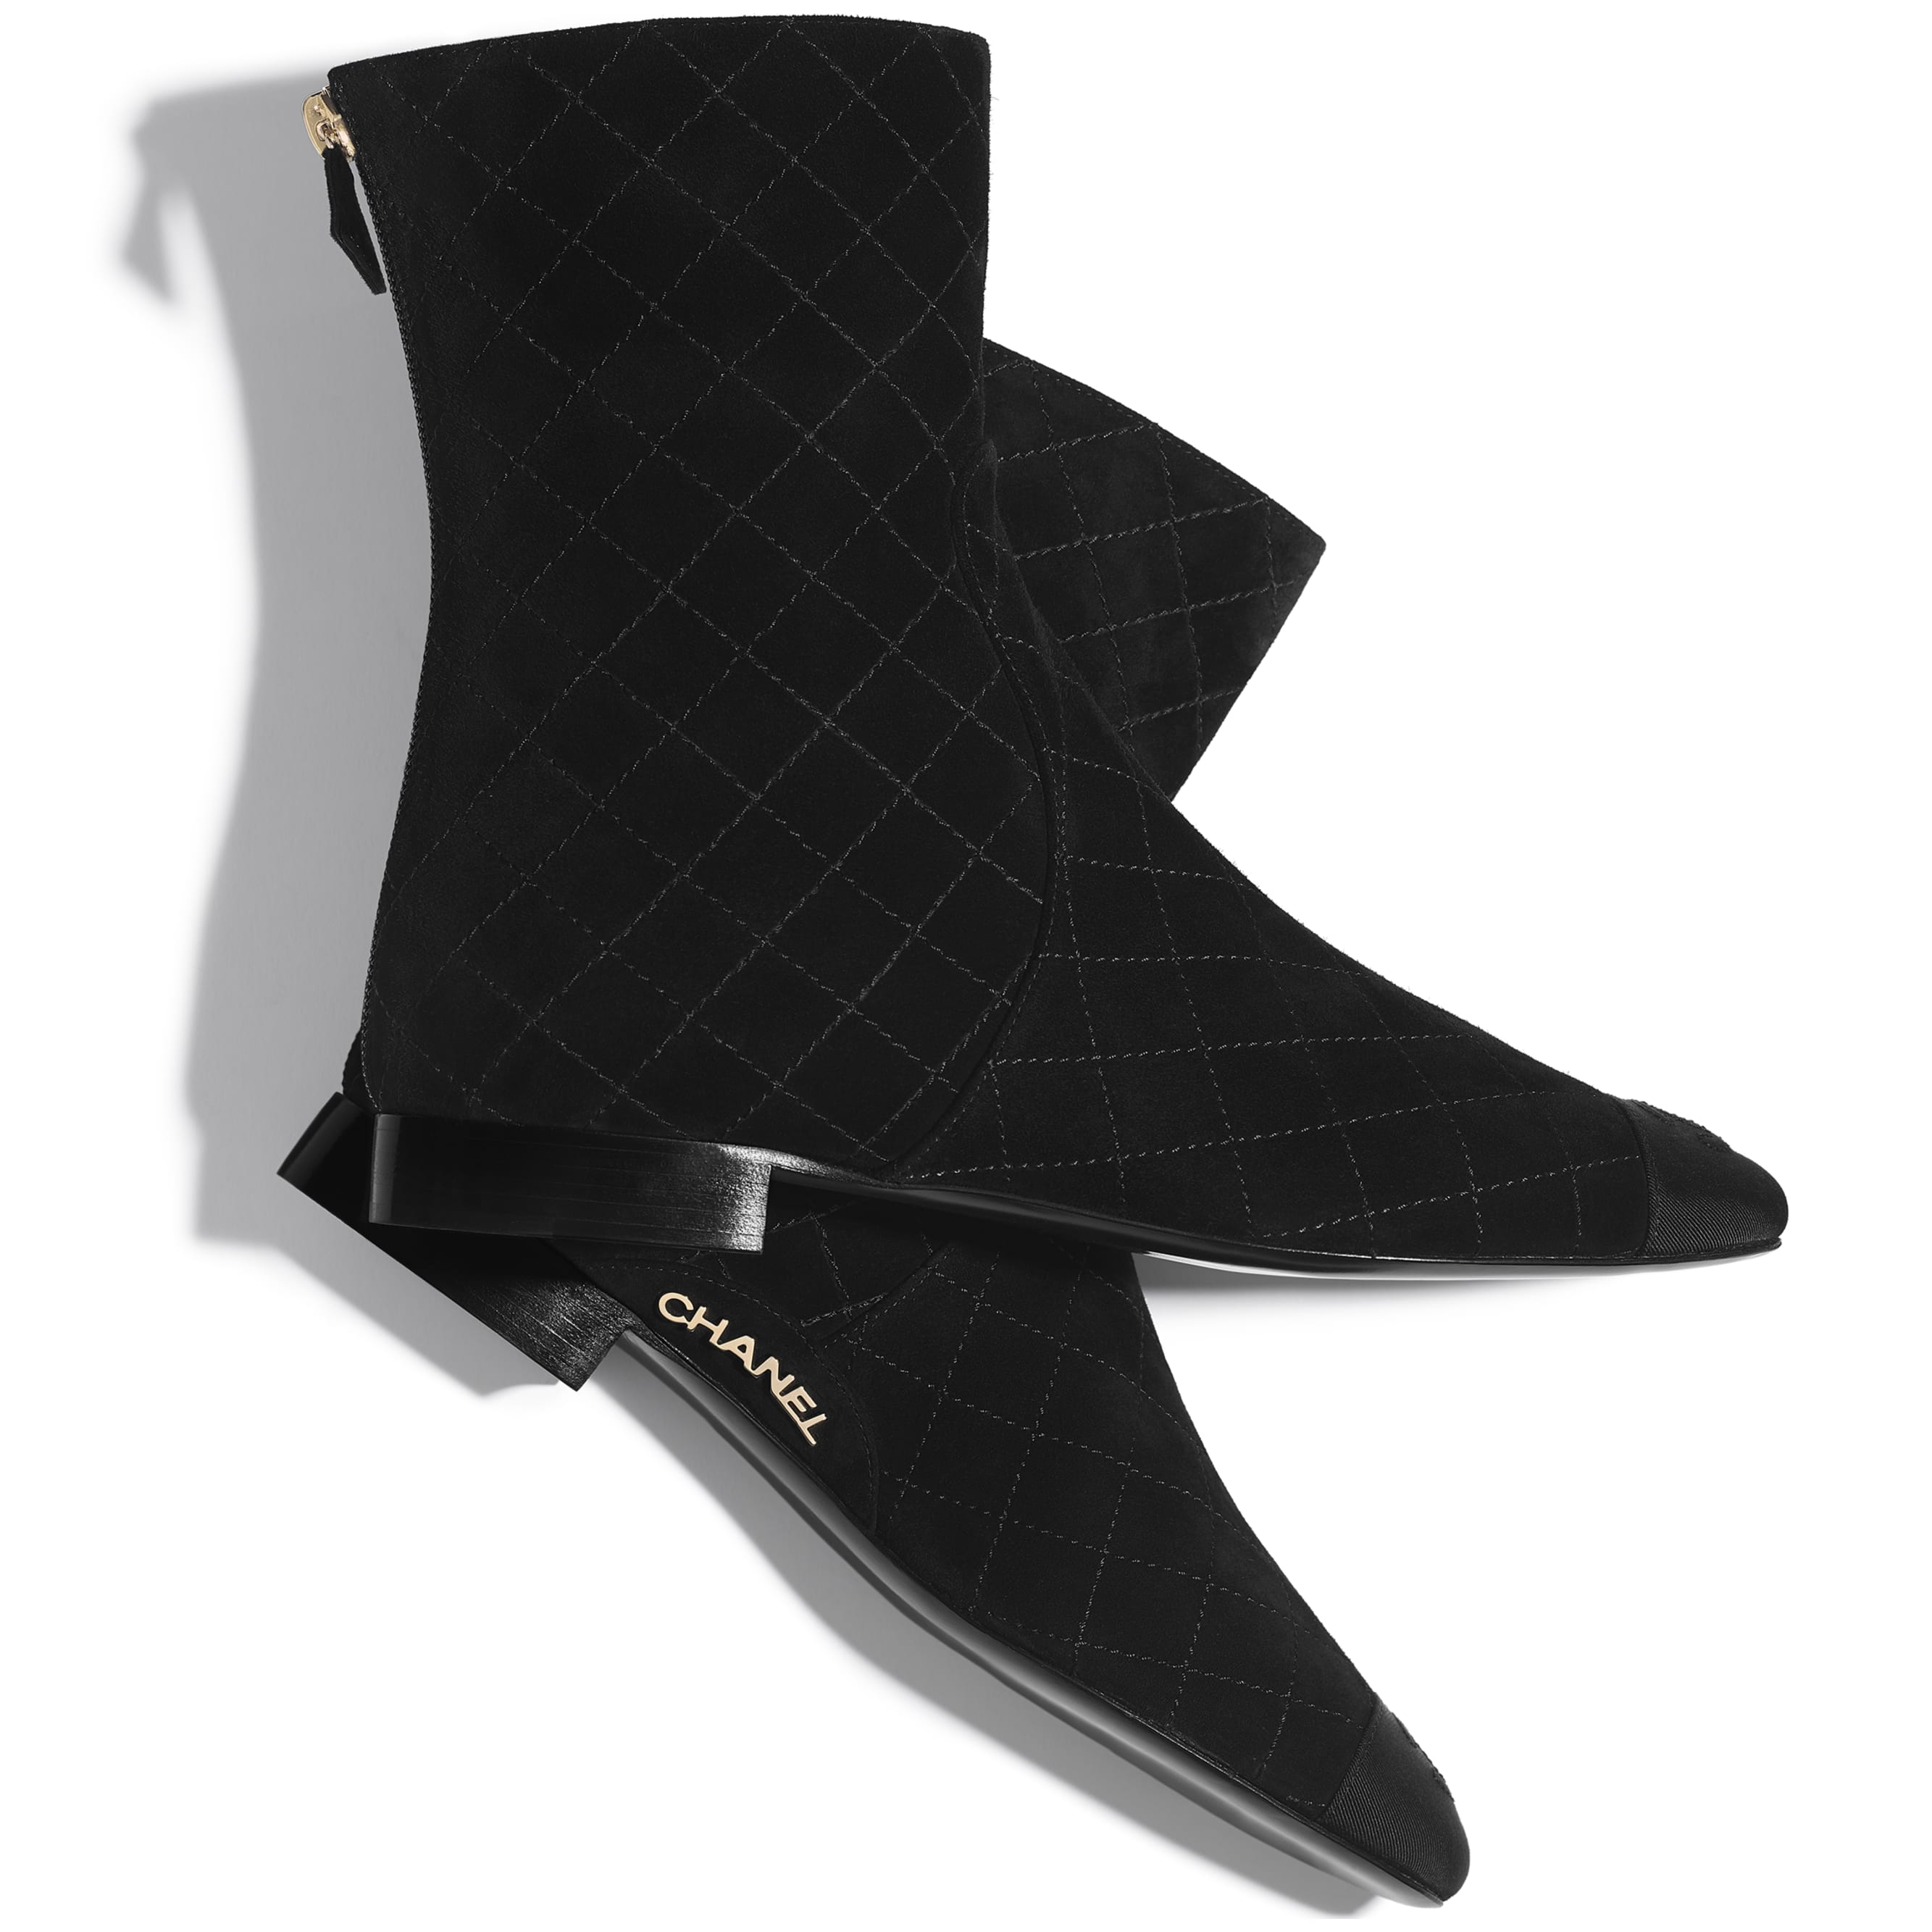 Ankle Boots - Black - Suede Calfskin & Grosgrain - CHANEL - Extra view - see standard sized version